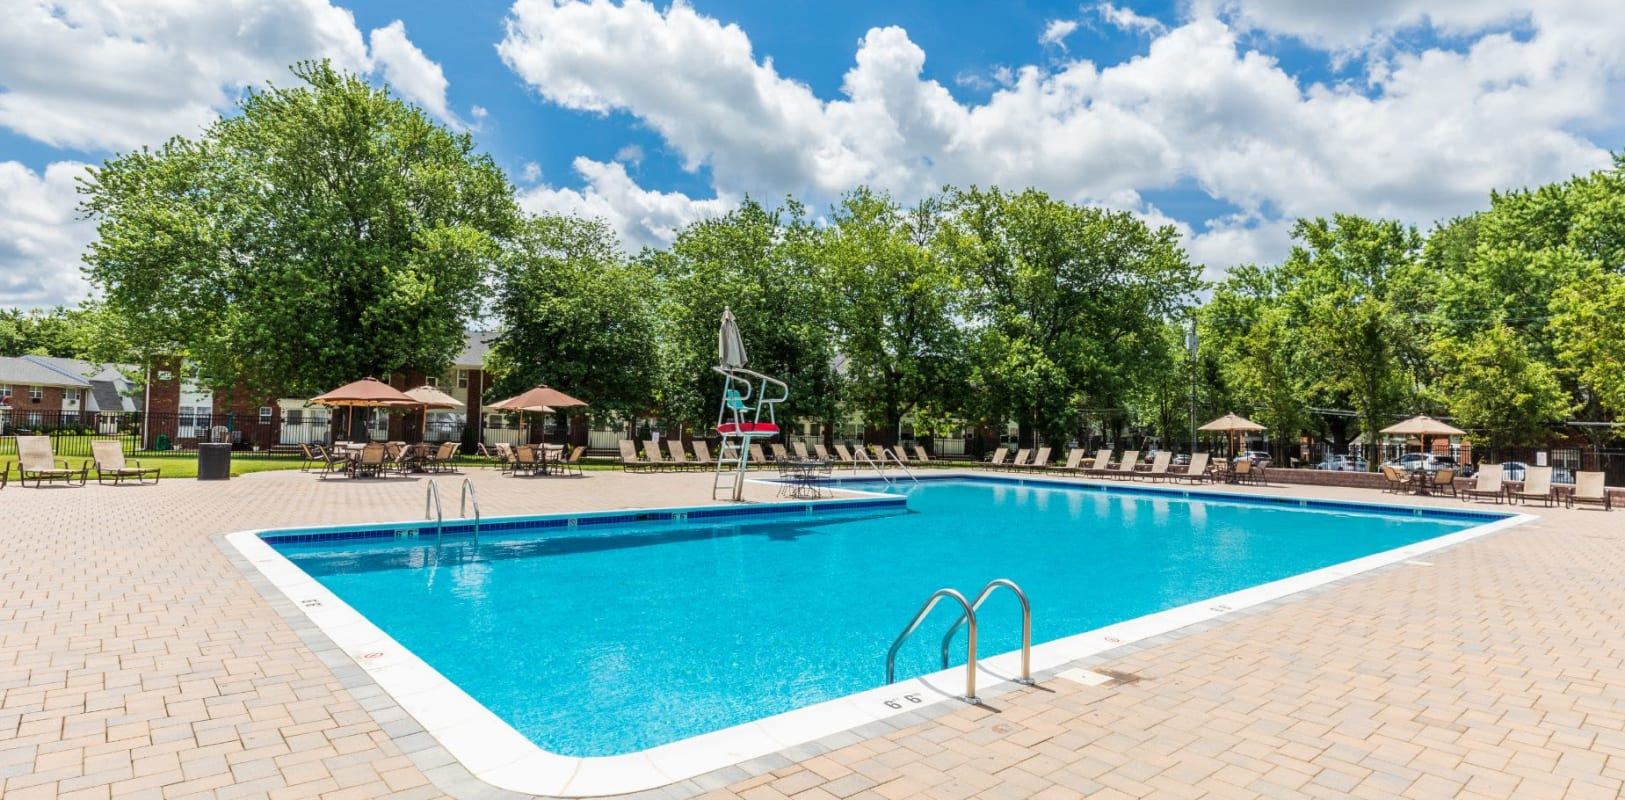 Sparkling swimming pool at Nieuw Amsterdam Village in South Amboy, New Jersey